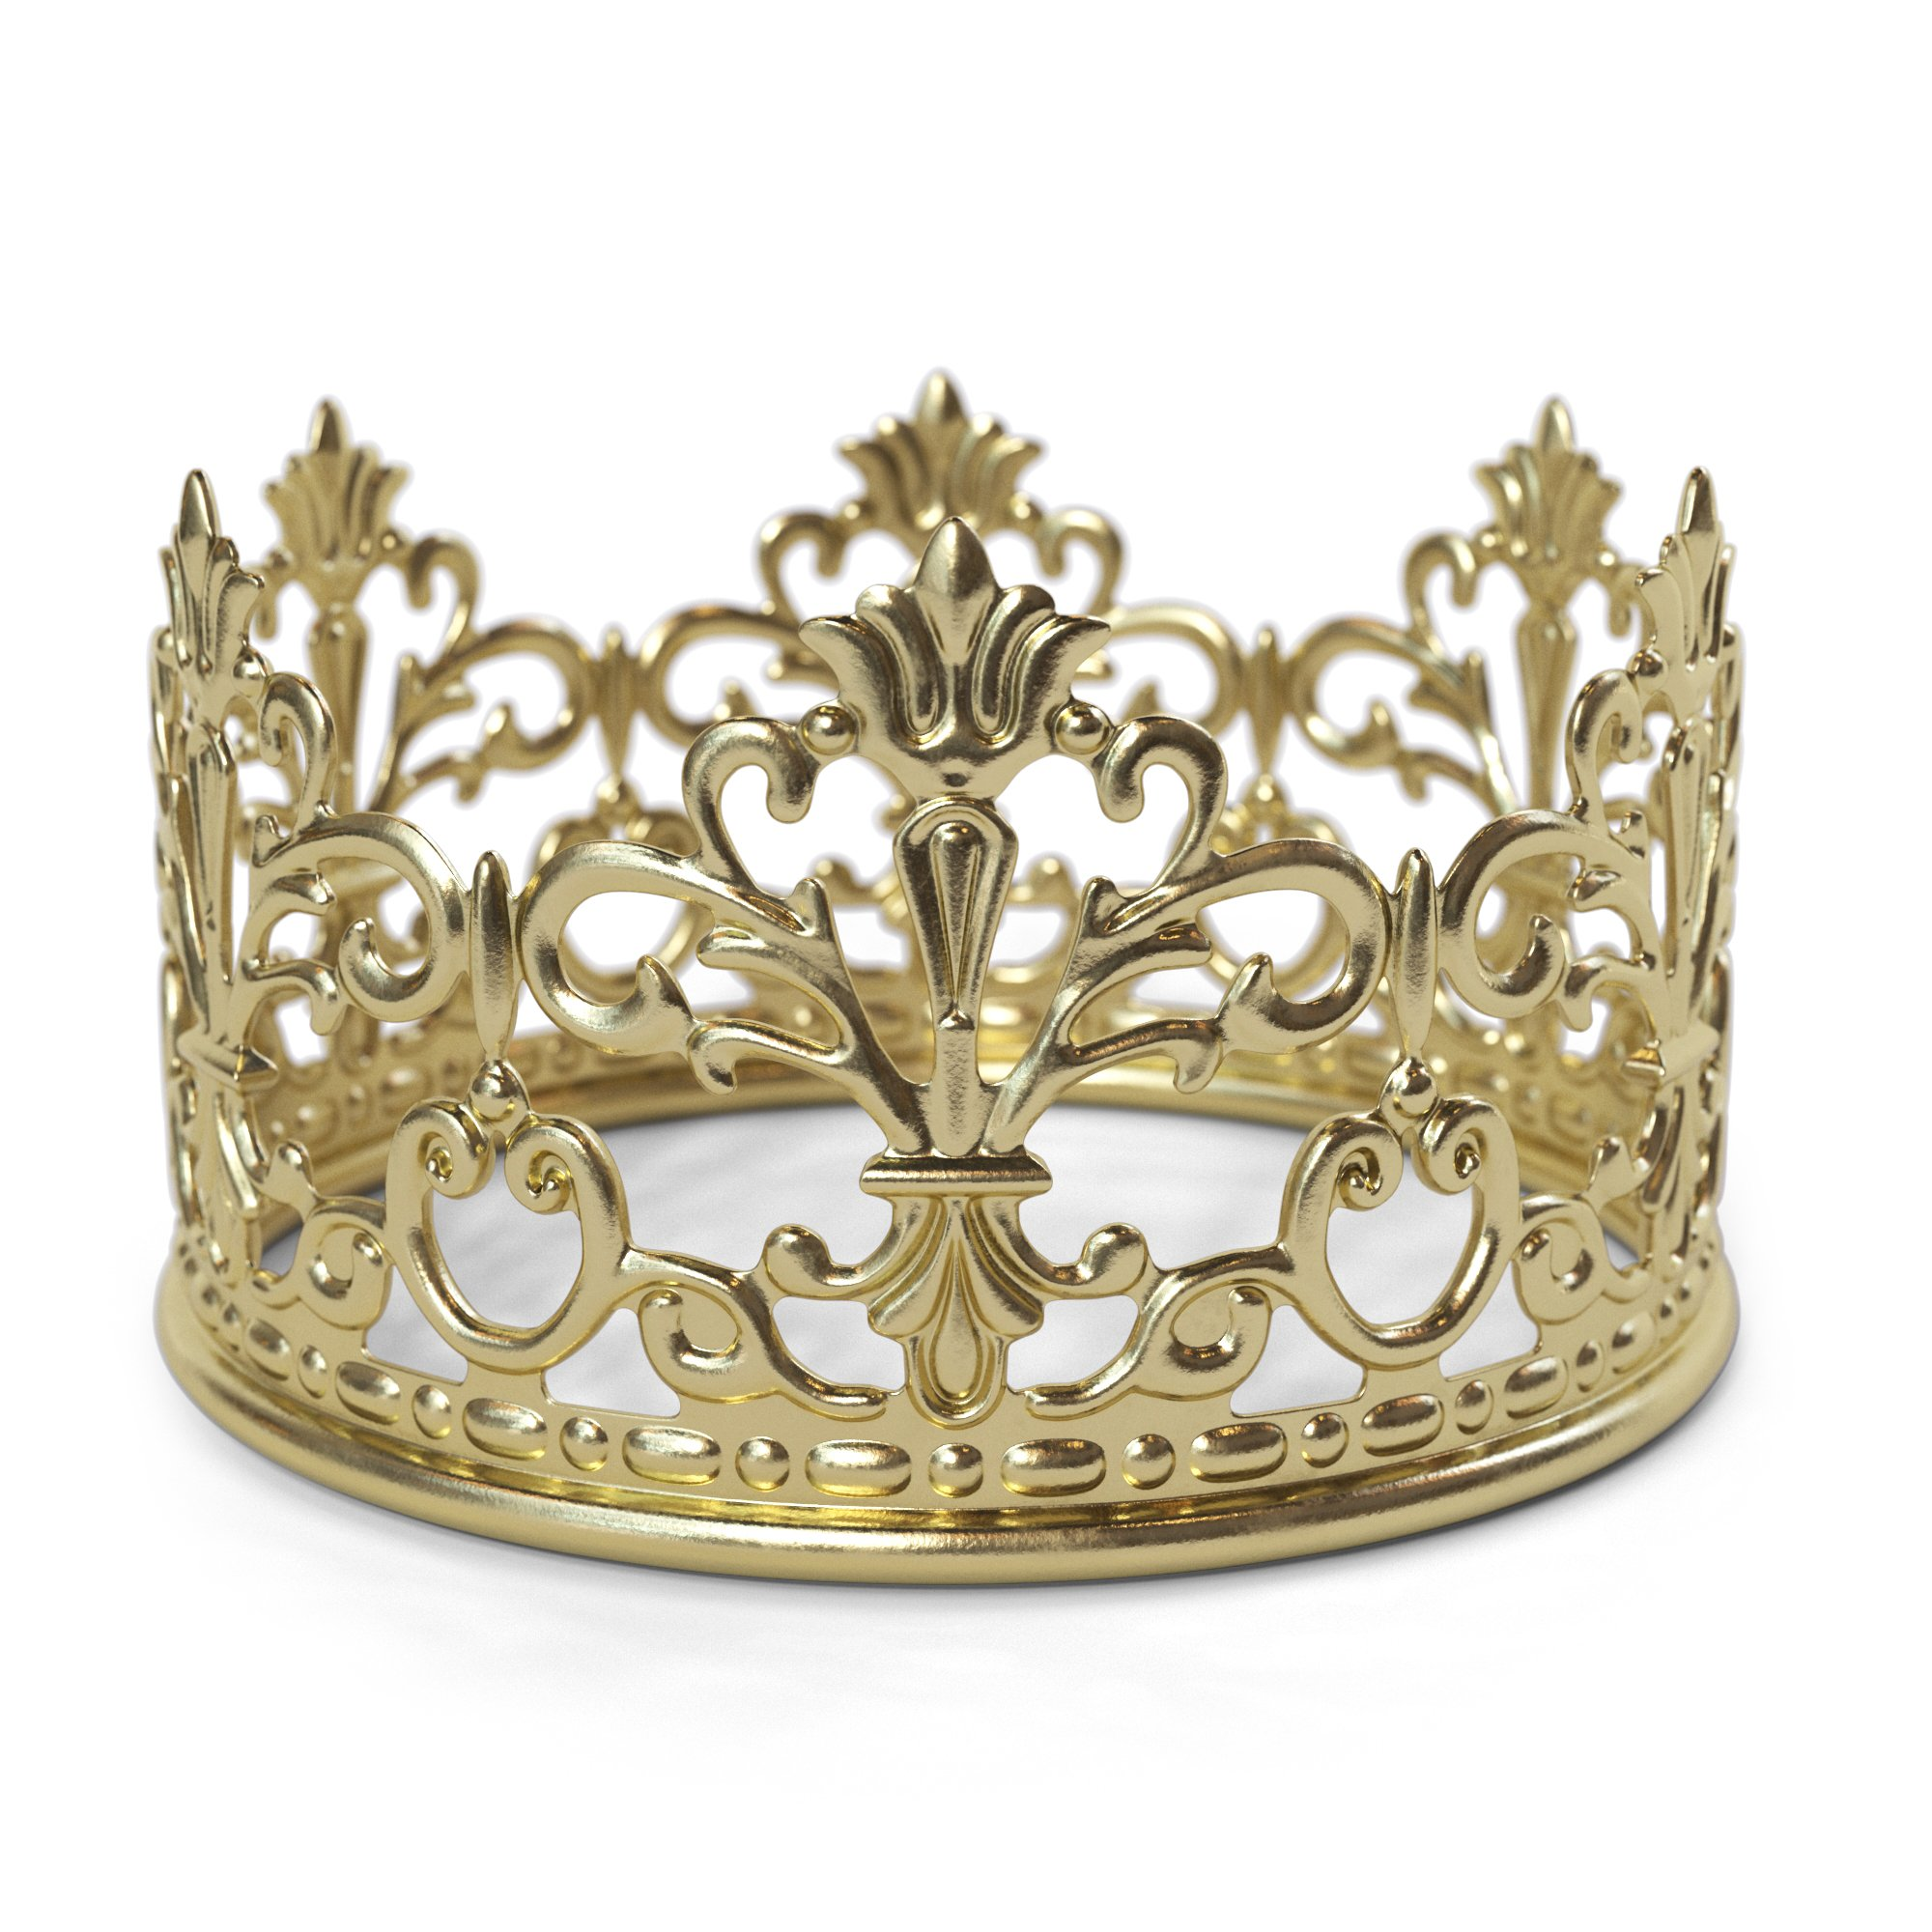 Gold Crown Cake Topper By The Preppy Crown: Elegant Cake Decoration For King, Queen, Prince And Princess Themed Parties –Royal Birthday Cake Decoration For Babies, Kids, Men And Women